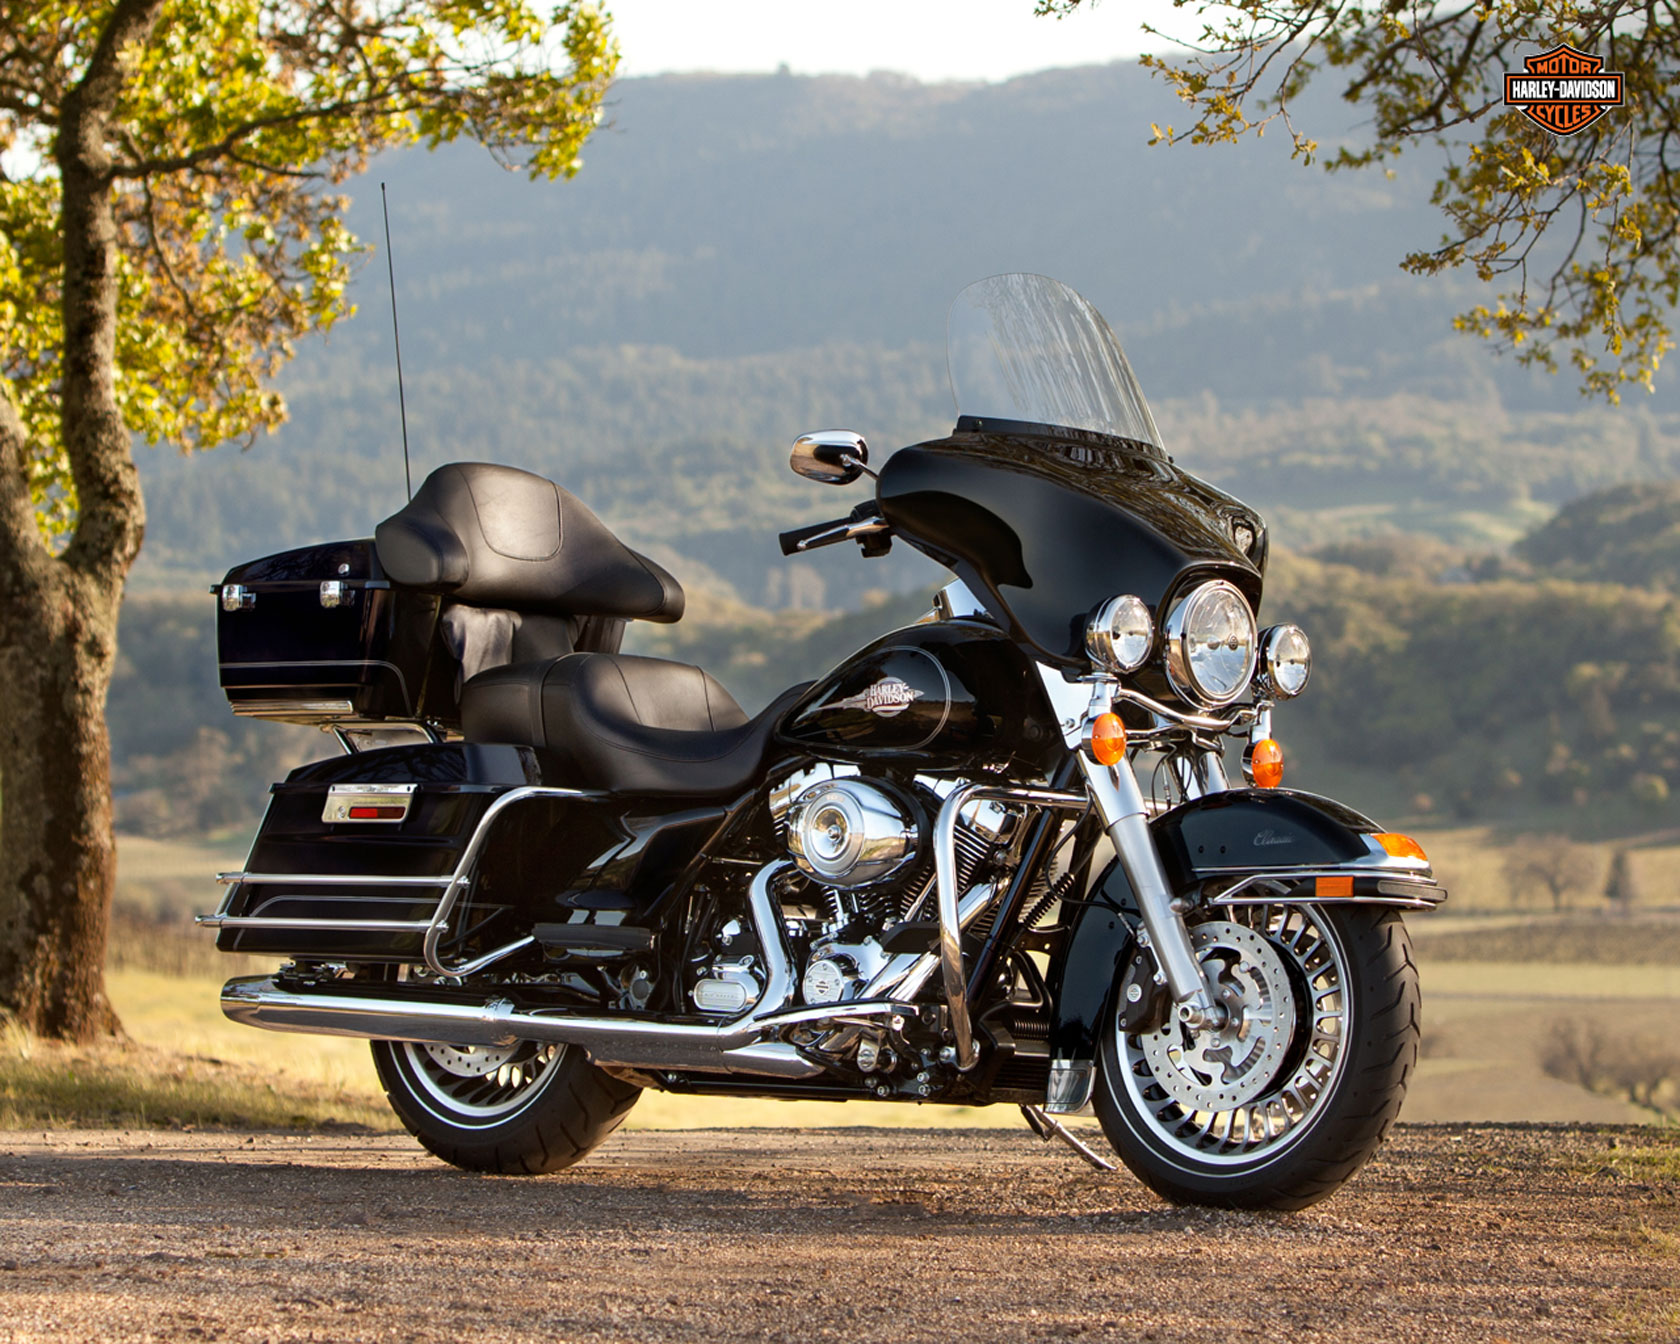 Harley-Davidson FLHTC Electra Glide Classic 2011 #14